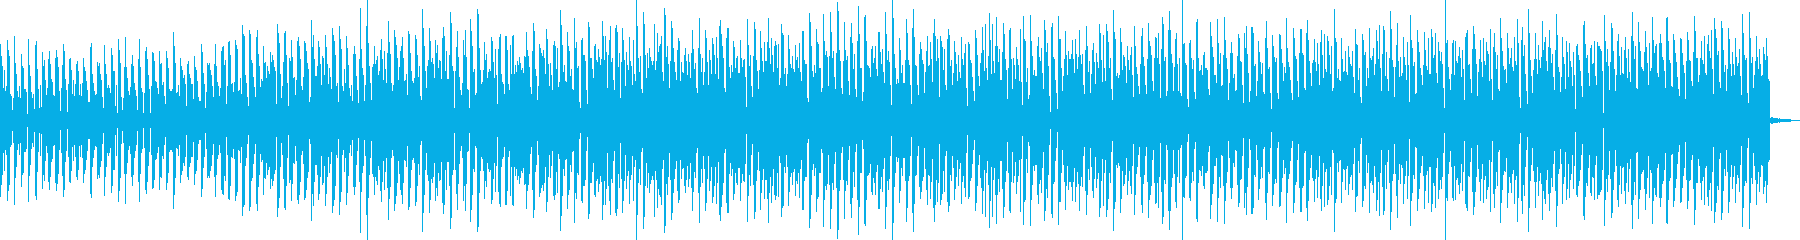 Exciting melodies with speed's reproduced waveform